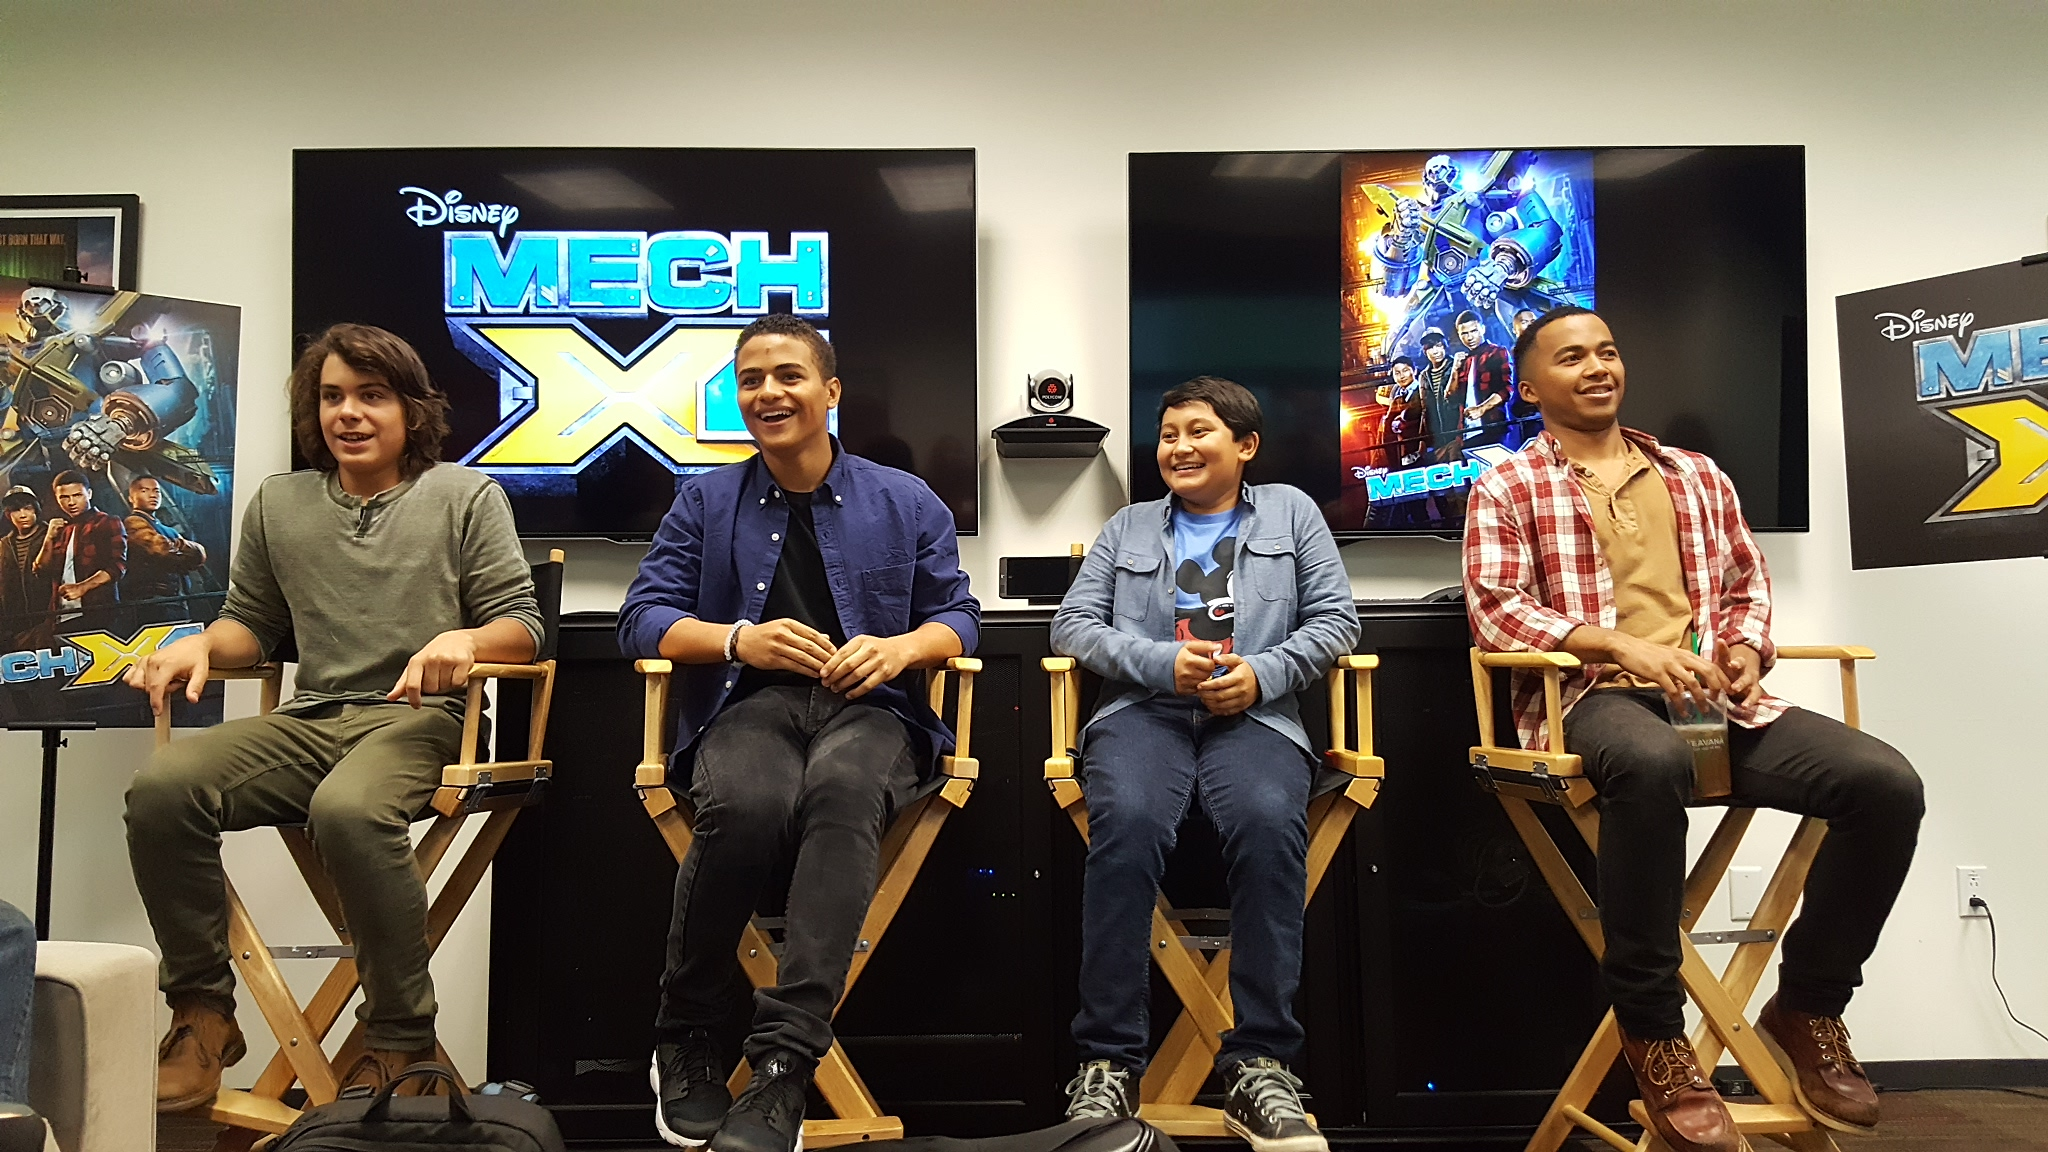 Cast of Disney Channel's MECH X-4 TV Series NATHANIEL POTVIN, KAMRAN LUCAS, PEARCE JOZA AND RAYMOND CHAM